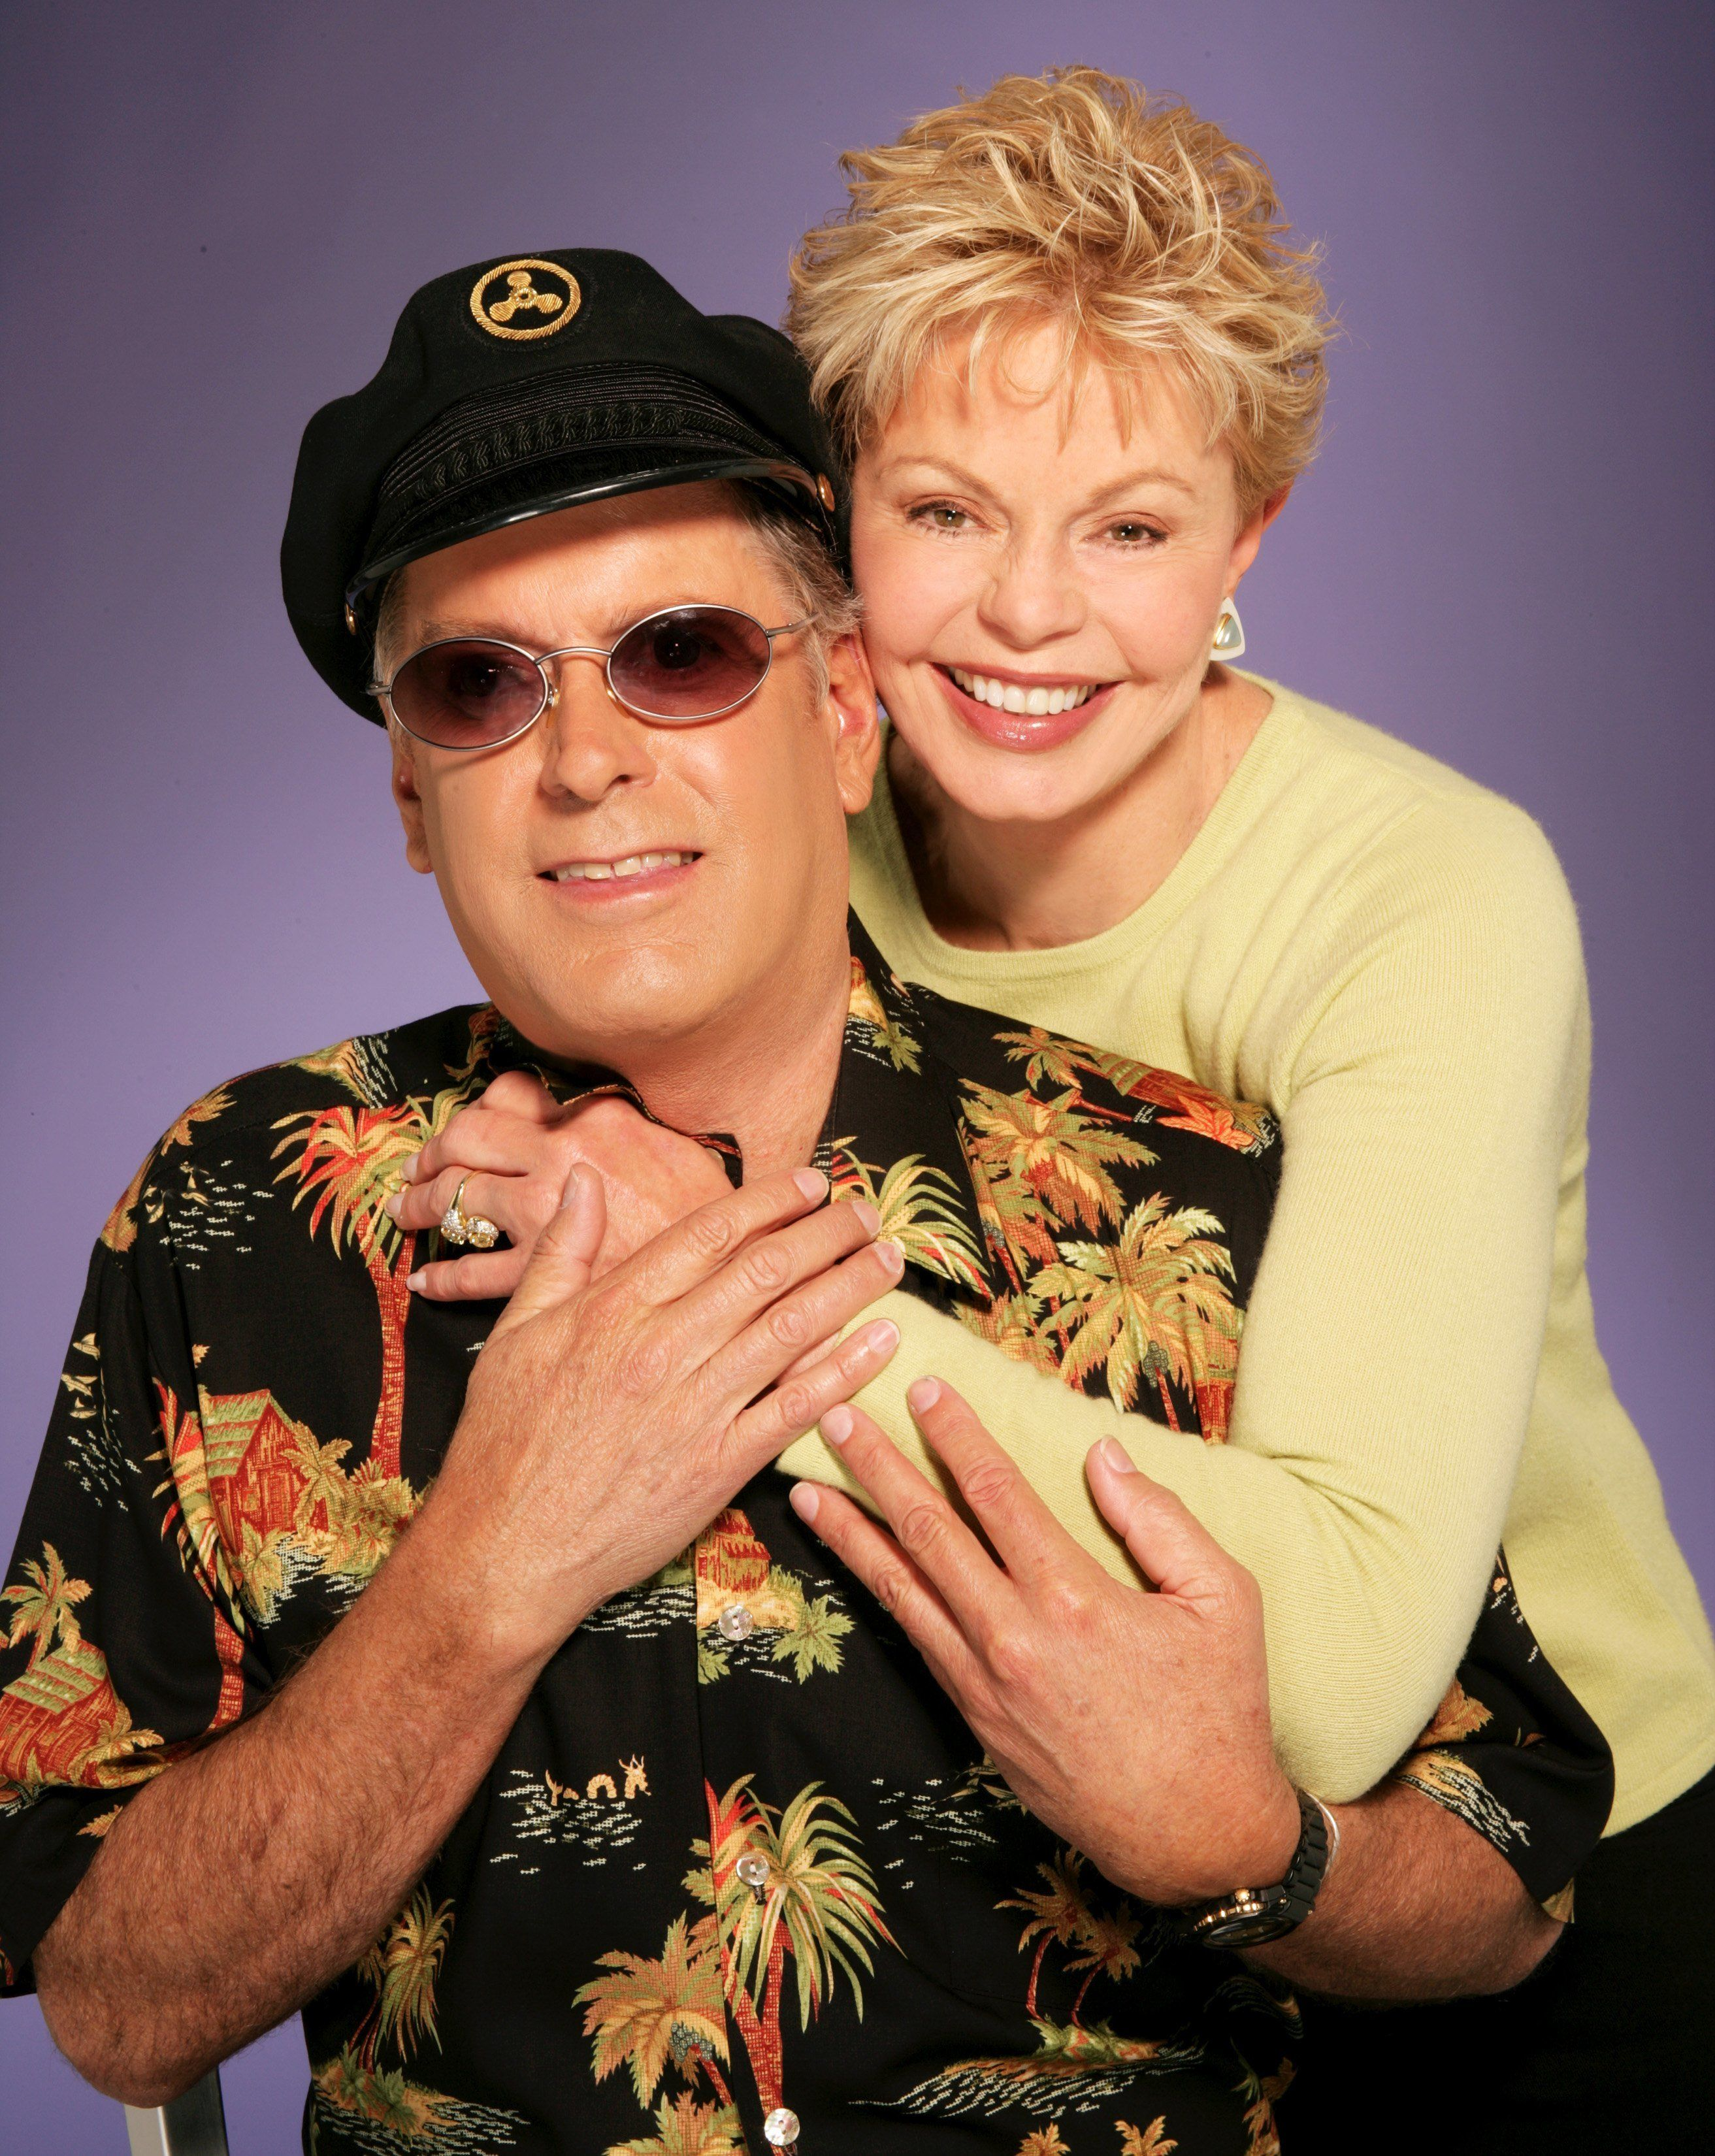 LOS ANGELES - 2005:  Singers Toni Tennille and Daryl Dragon of the Duo Captain & Tennille pose for a portrait in 2005 in Los Angeles, California. (Photo by Harry Langdon/Getty Images)